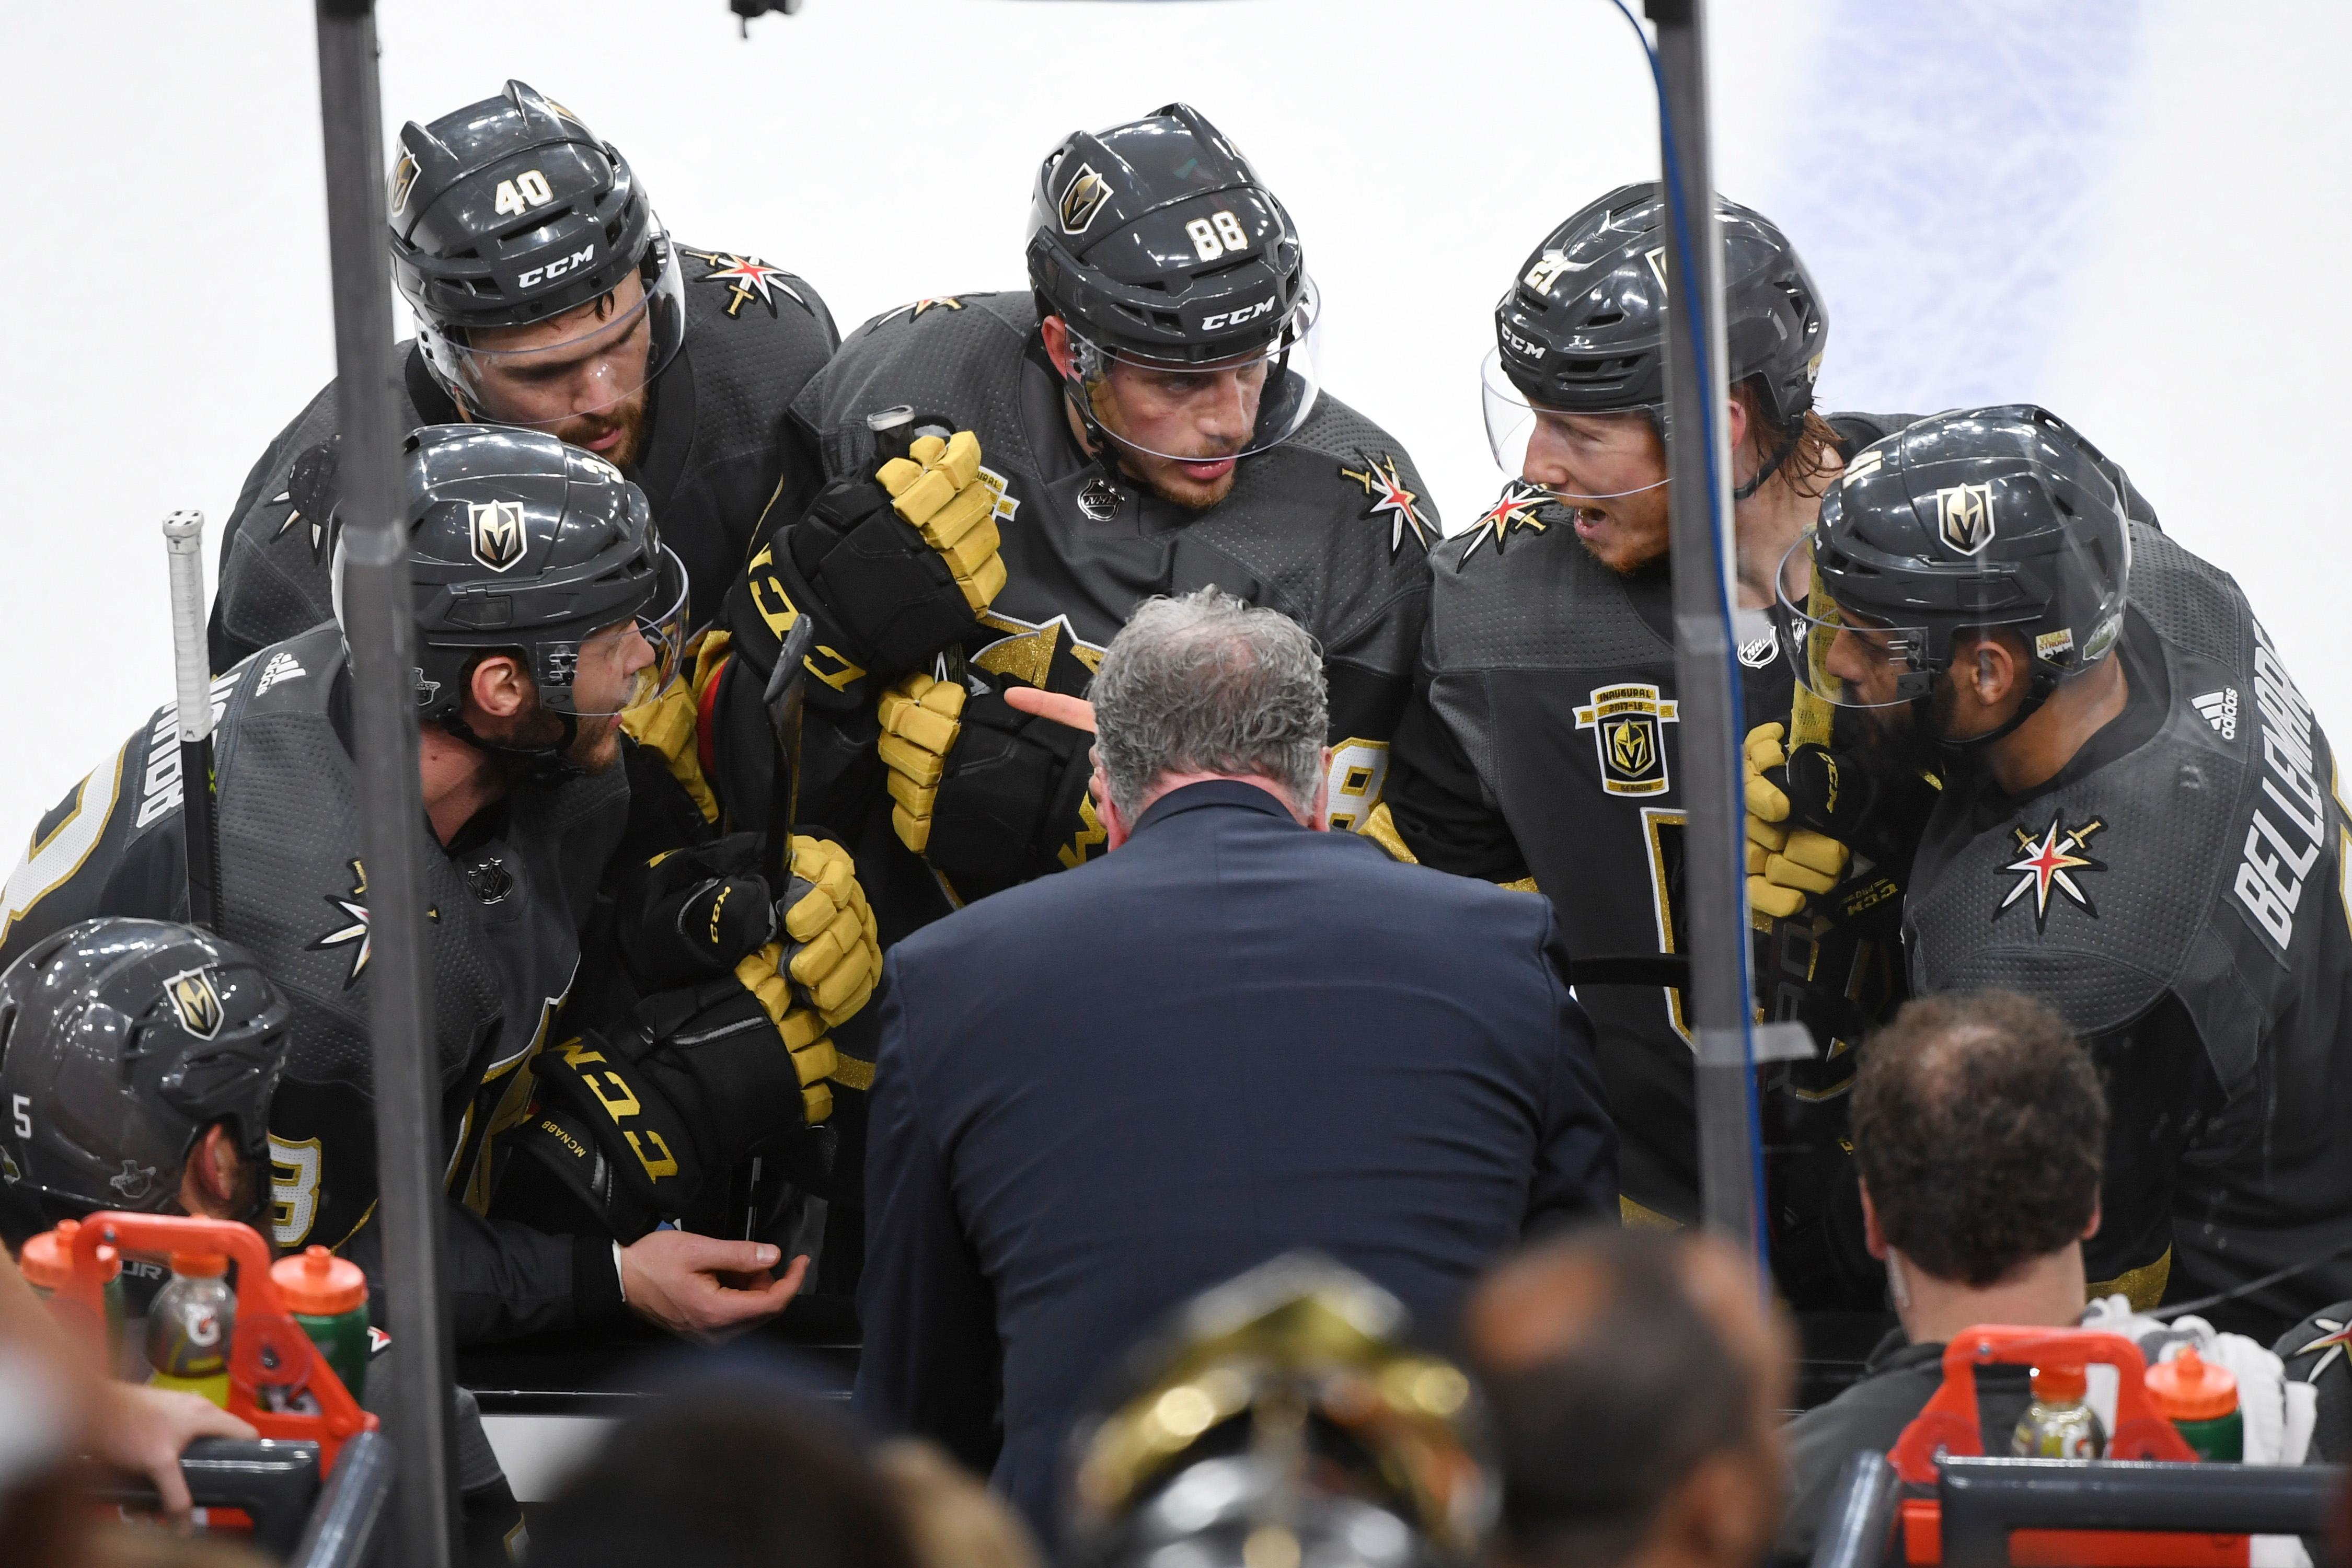 Vegas Golden Knights players huddle during a time out in the closing minutes of Game 4 of their NHL hockey Western Conference Final game against the Winnipeg Jets Friday, May 18, 2018, at T-Mobile Arena. The Golden Knights won 3-2. CREDIT: Sam Morris/Las Vegas News Bureau